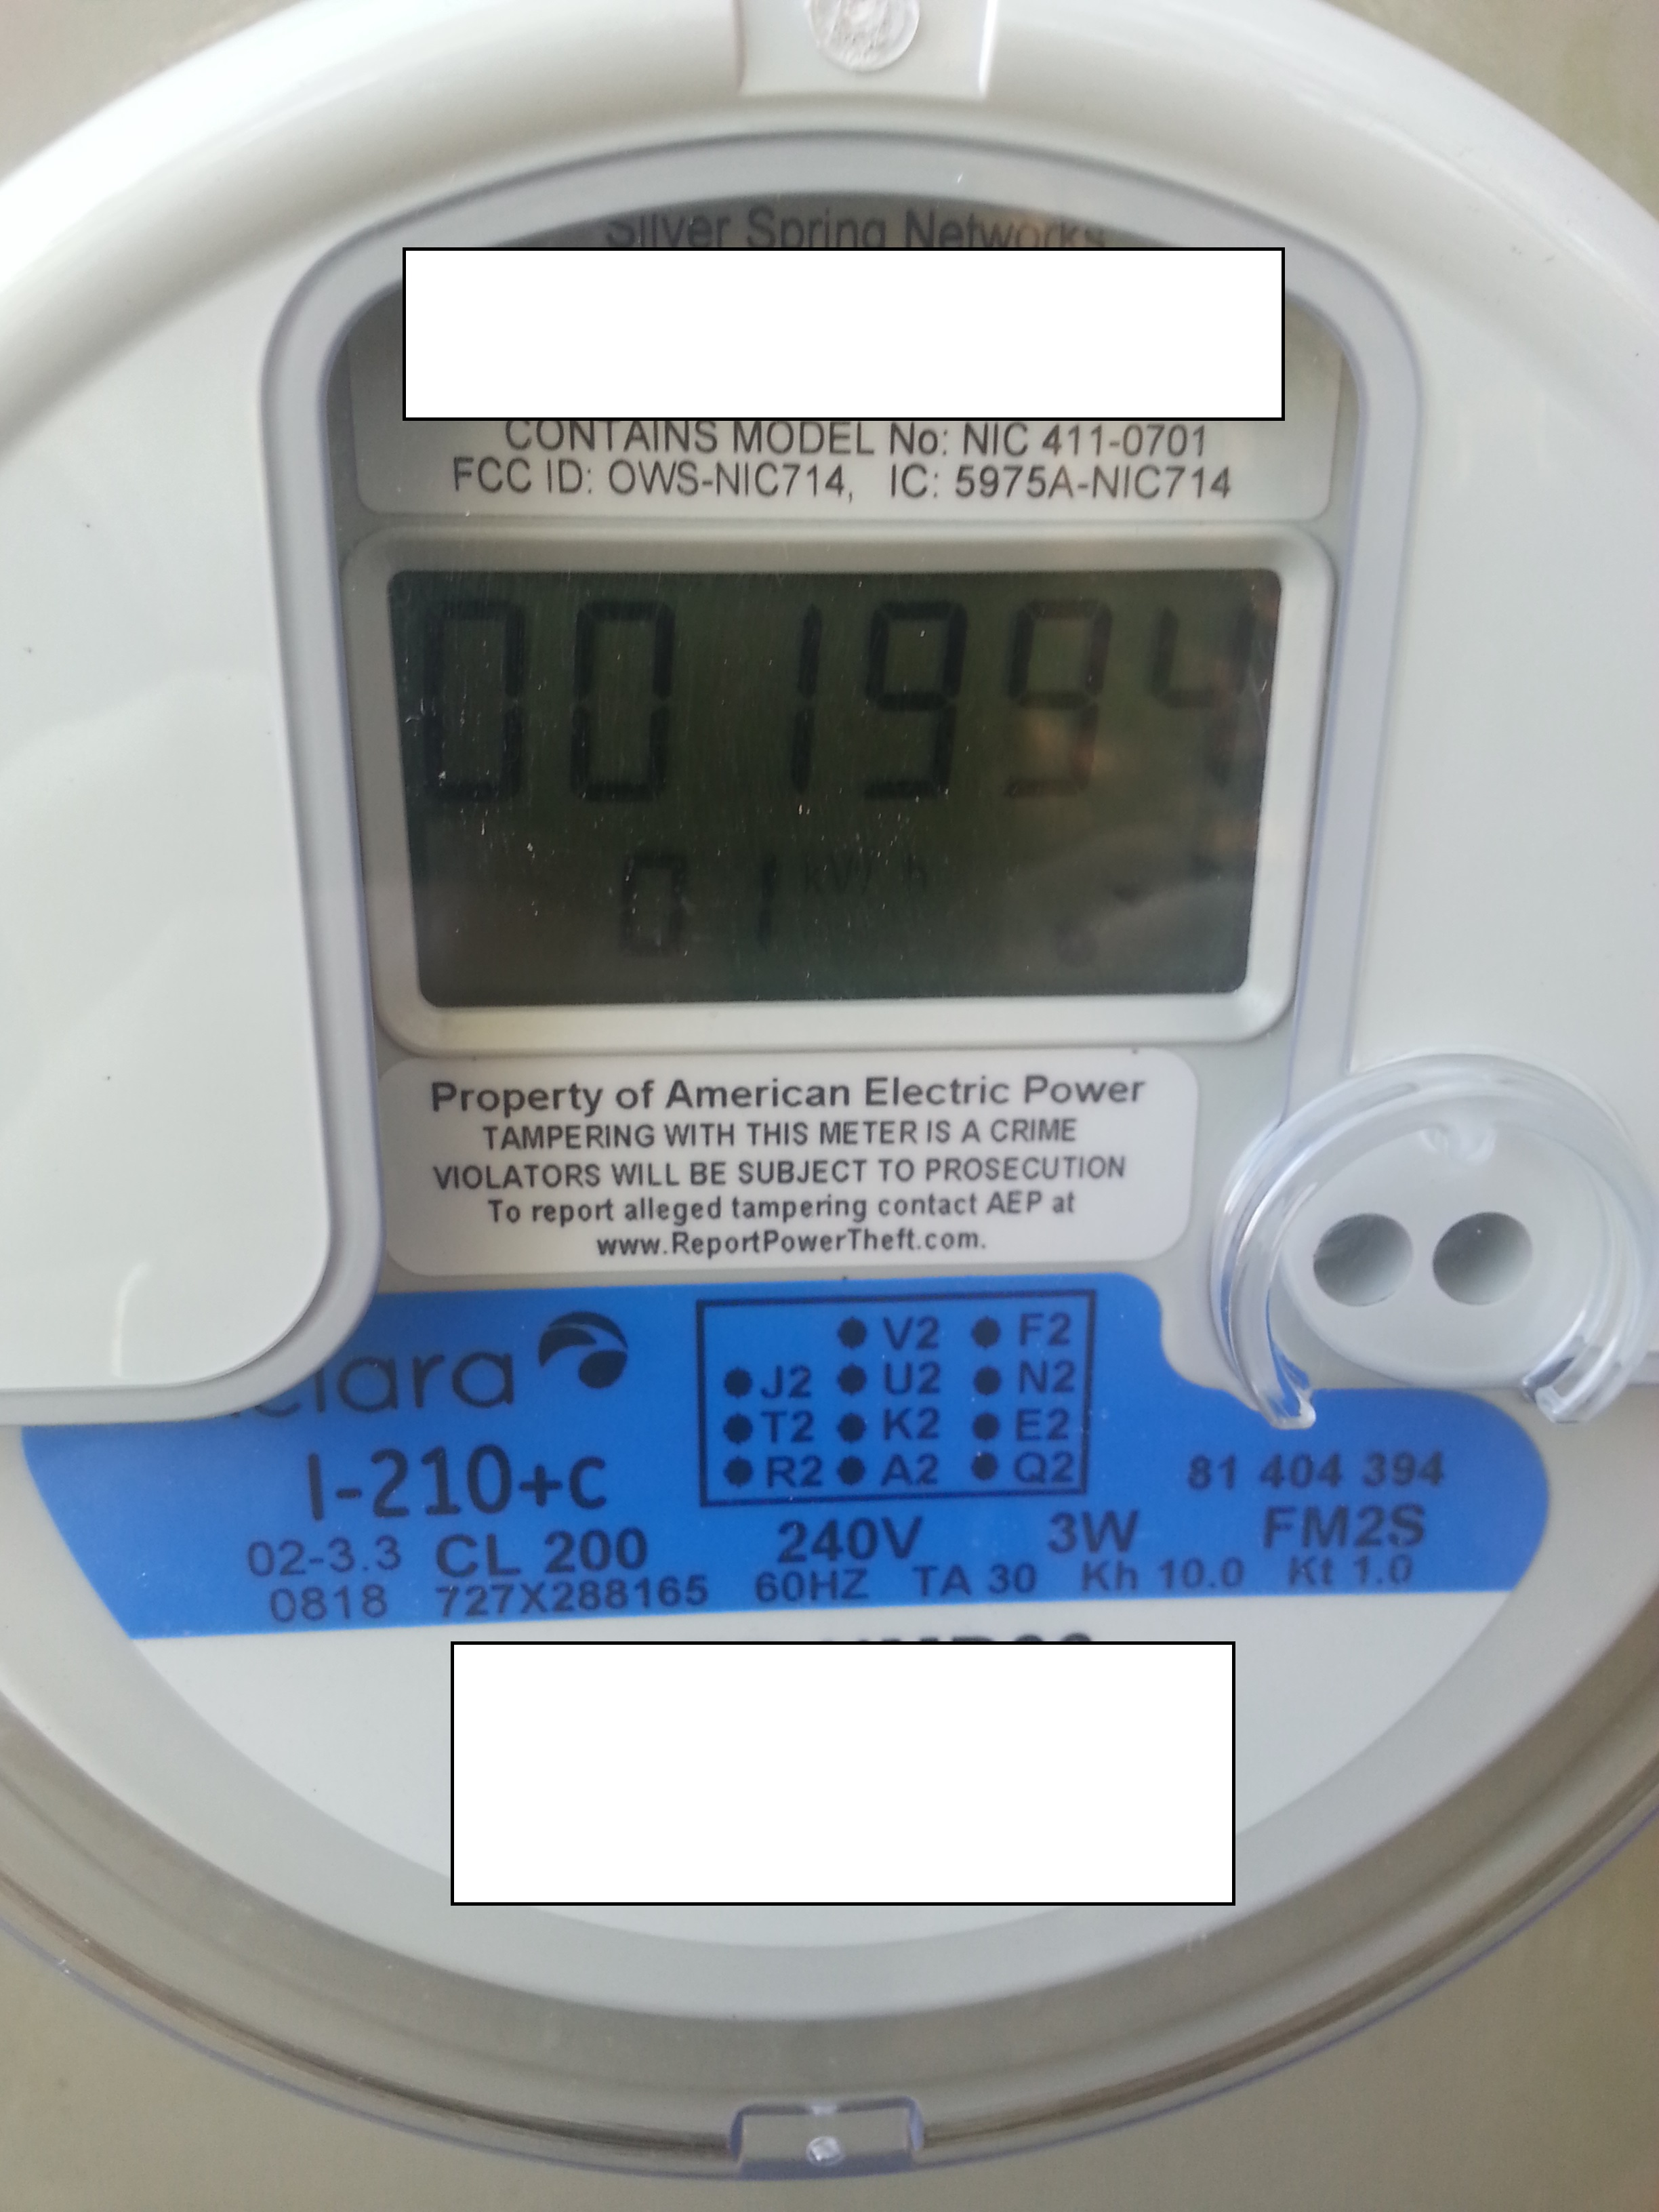 New 'Aclara' meter replaces Itron - no messages · Issue #108